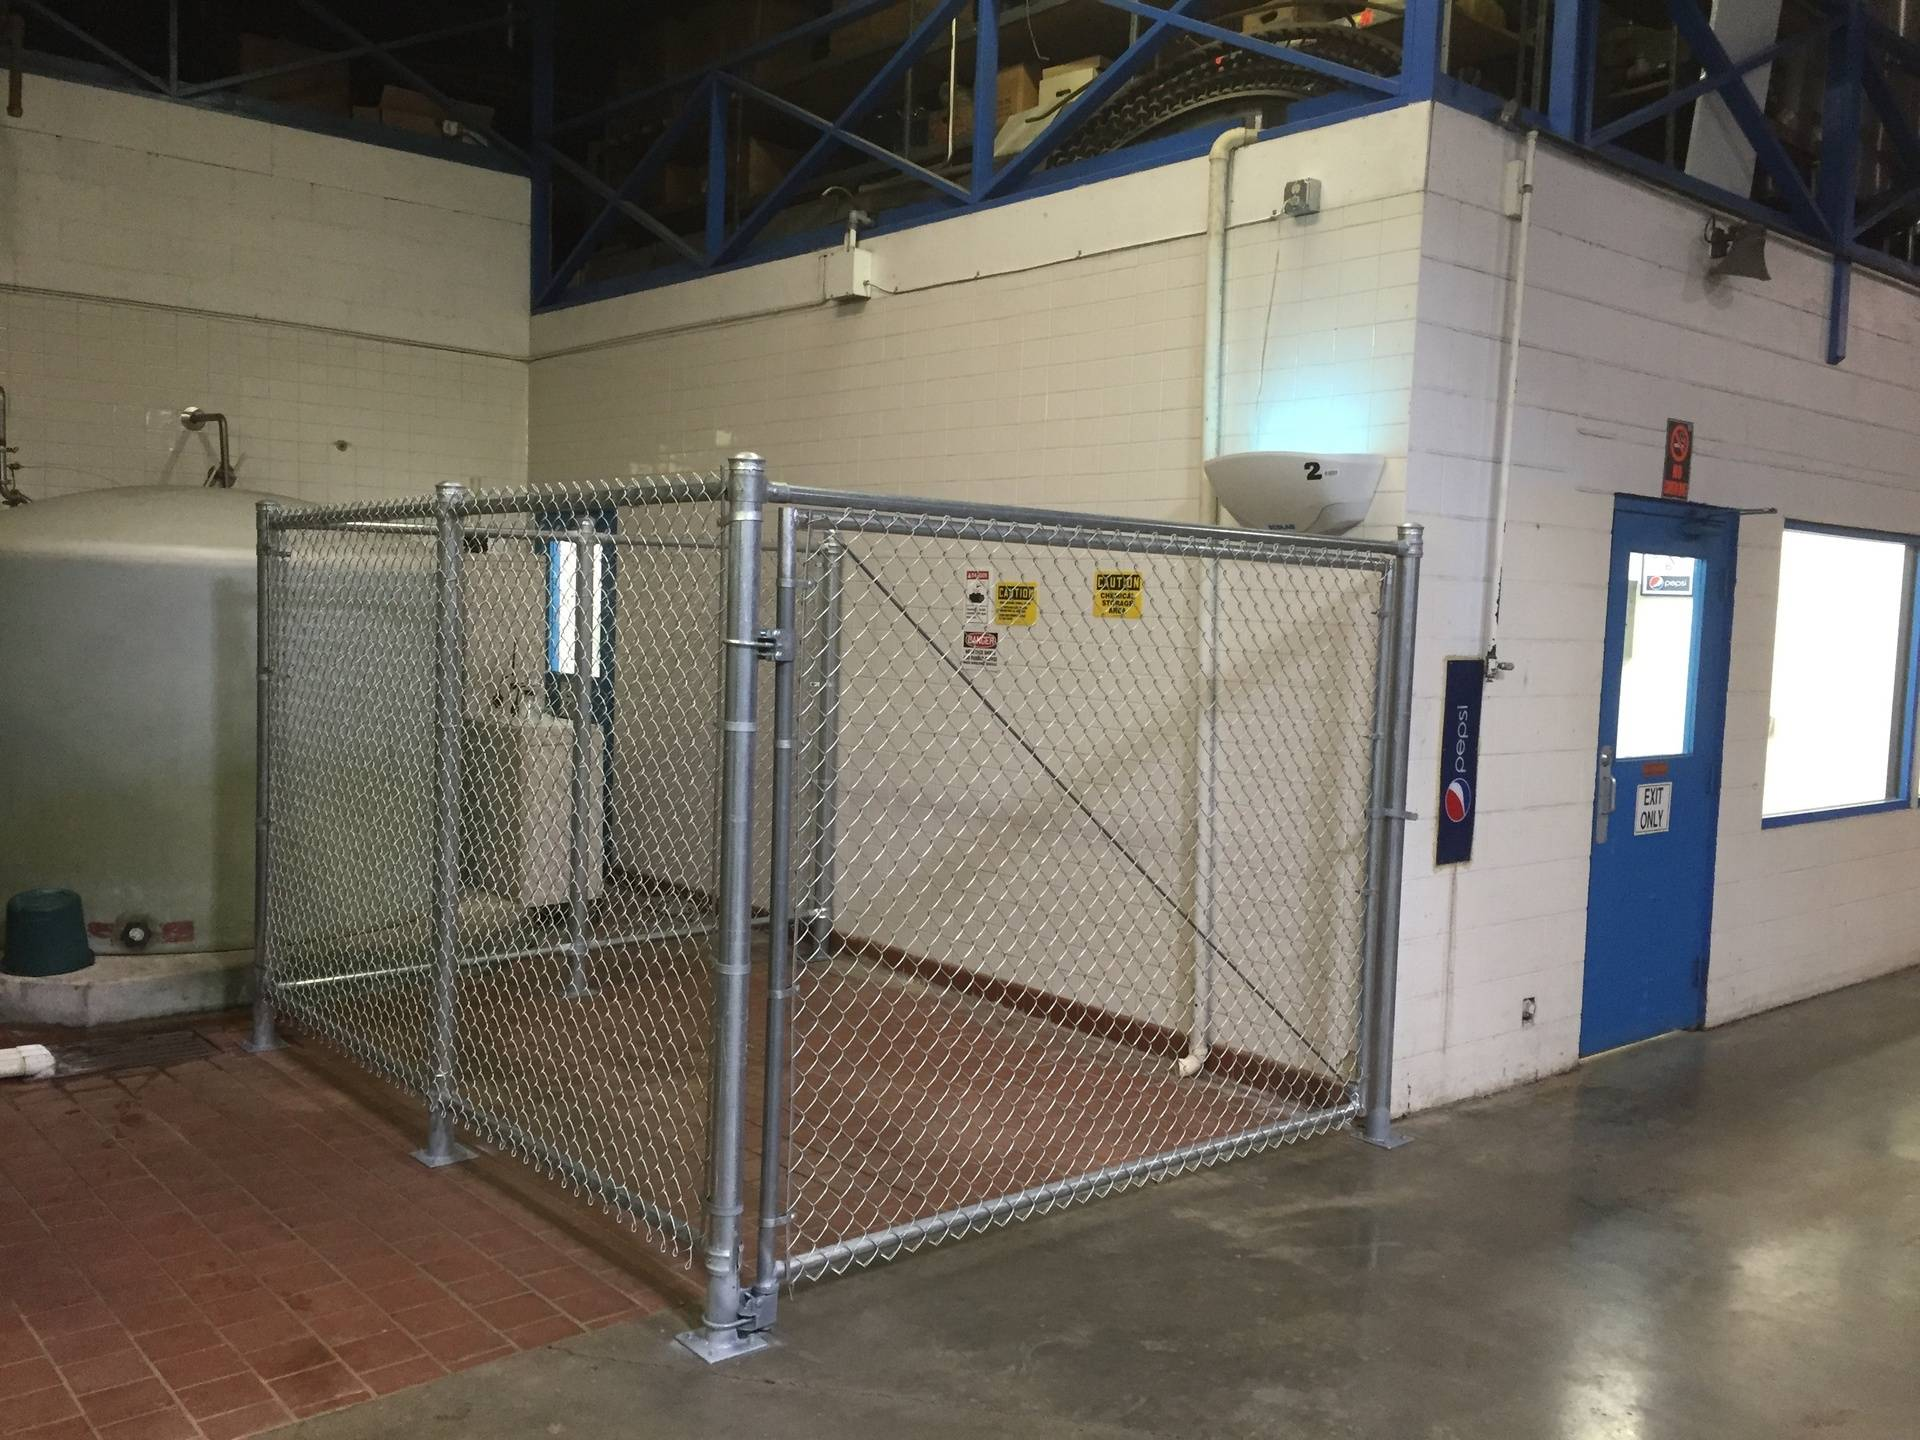 Secure indoor enclosure for chemicals